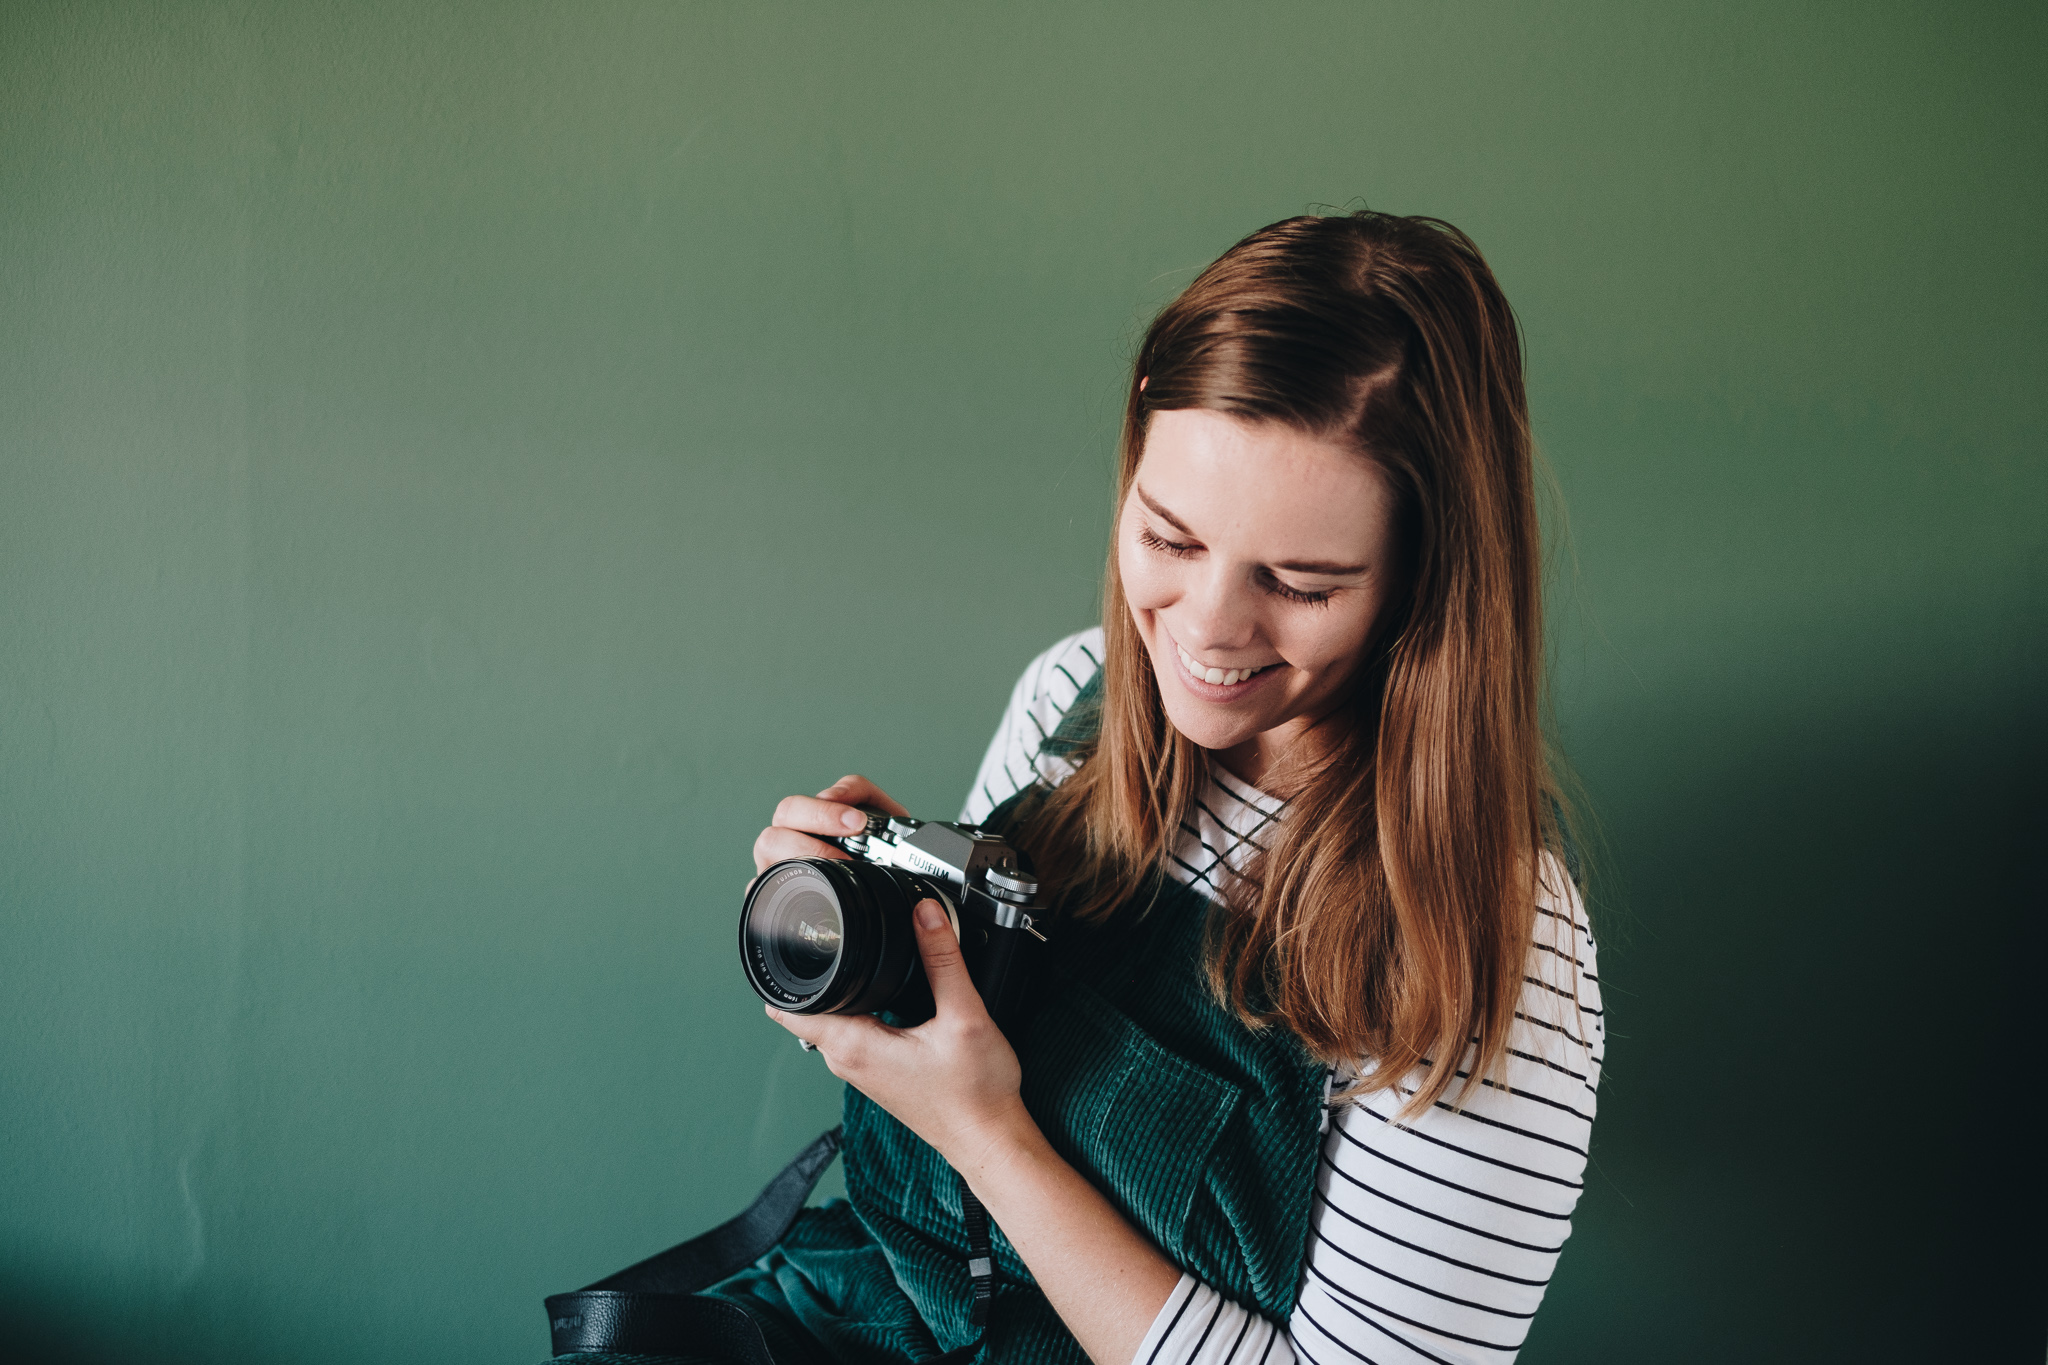 DIY Personal Branding Photography 1 Things to do before hiring a personal branding photographer